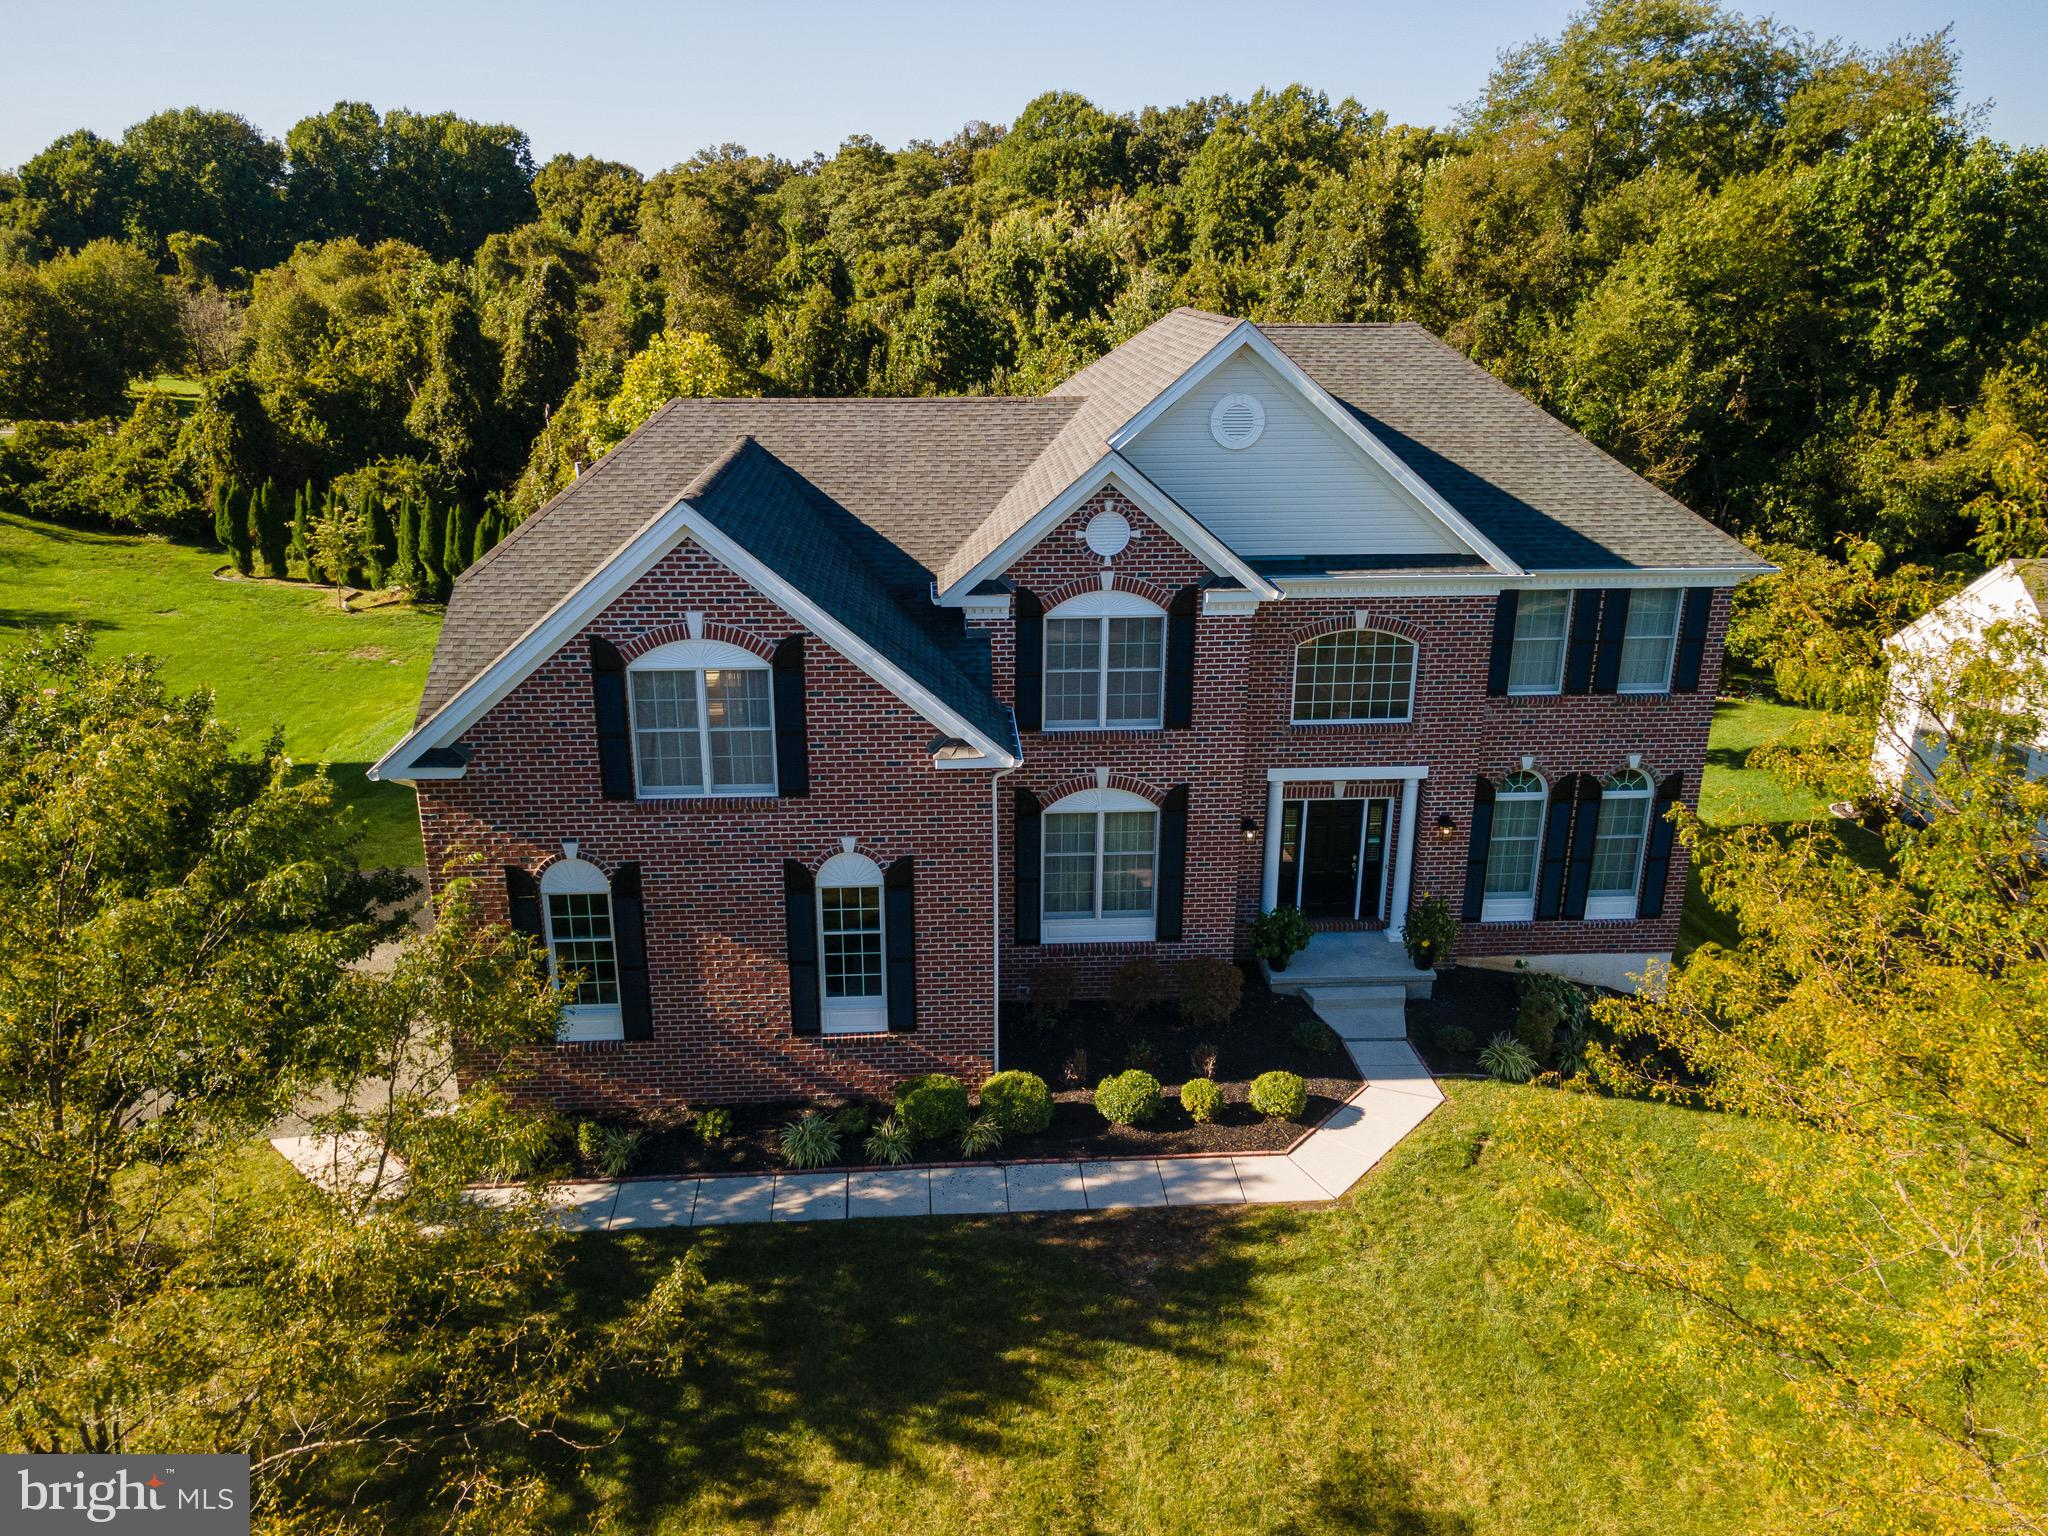 This is a rare opportunity to own a luxurious dream home located in the prestigious Woodlands at St. Georges in Red Lion Chase by Toll Brothers.   This massive estate is 4,475 sq ft located near the end of the cul-de-sac which backs to amazing woodland views.  Entering the foyer you notice the hardwood flooring along with  the breath taking staircase that wraps around the entire home.  Step into the gourmet kitchen that includes all stainless steel appliances, granite countertops, and upgraded cognac cabinets.  Enjoy your meals outdoors on hot summer nights with an oversized deck right off the rear kitchen!  The family rooms is absolutely stunning offering amazing natural light, gas  fireplace, and views of the luxurious staircase.  The master bedroom suite offers an additional seating area, luxurious jacuzzi tub in the master bath, and  his and her closets.  The lower level offers a finished basement that includes an additional bonus room/office, workshop, and private outdoor patio.  As an owner in this highly desired community you have access to community pool, work out center, and a private playground.  This home gives the buyers peace of mind as it includes a 1 year 2-10 Home Warranty.  Schedule your private tour today and be prepared to be blown away!